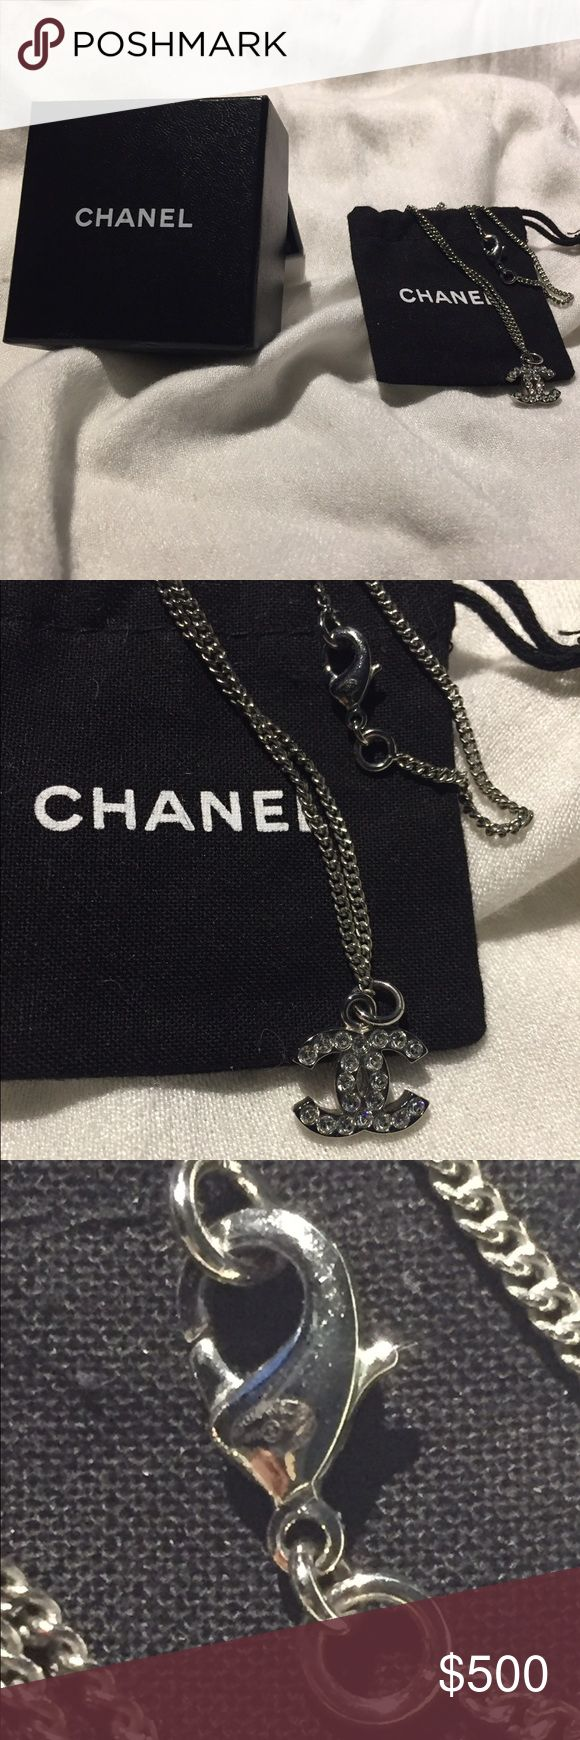 Auth CHANEL CC Logo Pendant Crystals Silver Ncklce Auth CHANEL CC Logo Pendant Crystals Silver Chain Necklace  Authentic Chanel Necklace Rare in Mint Condition.  It's on a 16 inch chain with the stamp on the lobster claw, includes Chanel Box, and Chanel Dust Bag.  I believe I have the receipt for this.    Chanel retired pieces only go up in price when in Excellent condition please see photos for condition!  Pic of the update Stamp  © Chanel ® B10 (Chanel Logo) V Made in Italy  Reasonable…